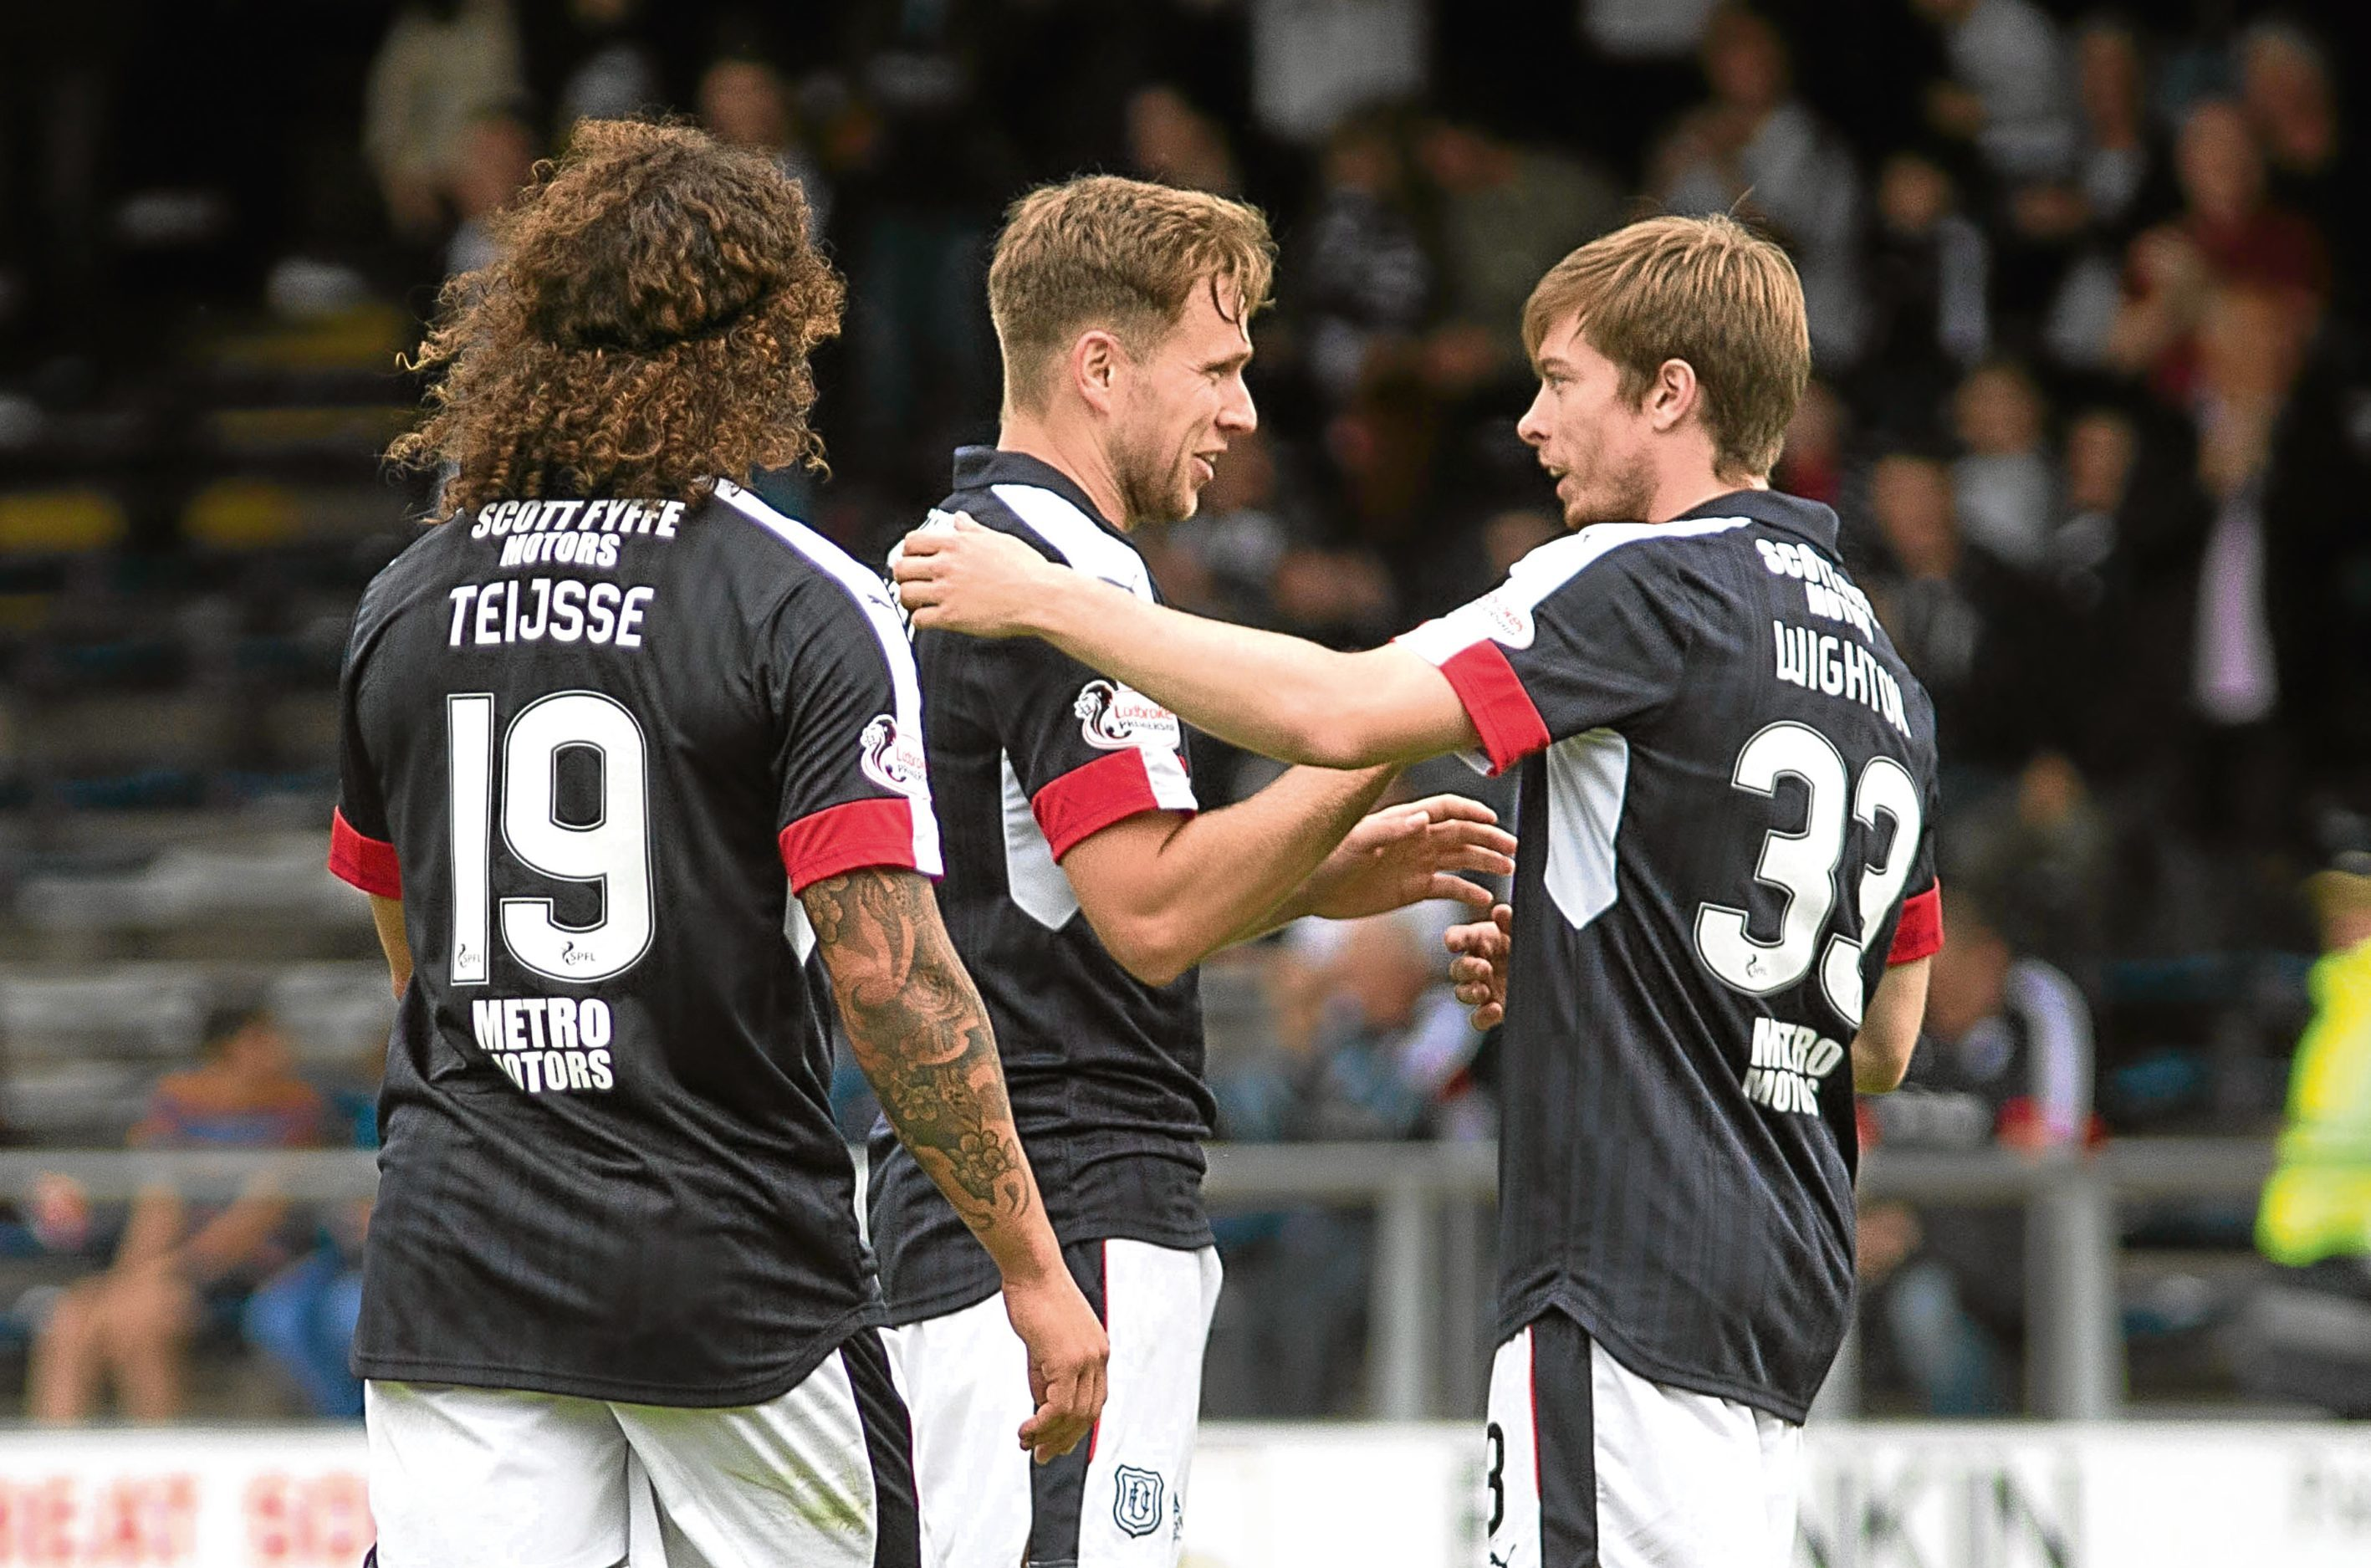 Craig Wighton and Yordi Teijsse congratulate Greg Stewart after the Dundee striker scored the fifth goal against Forfar Athletic in the Betfred Cup Group A at Dens Park in July. Picture by David Young